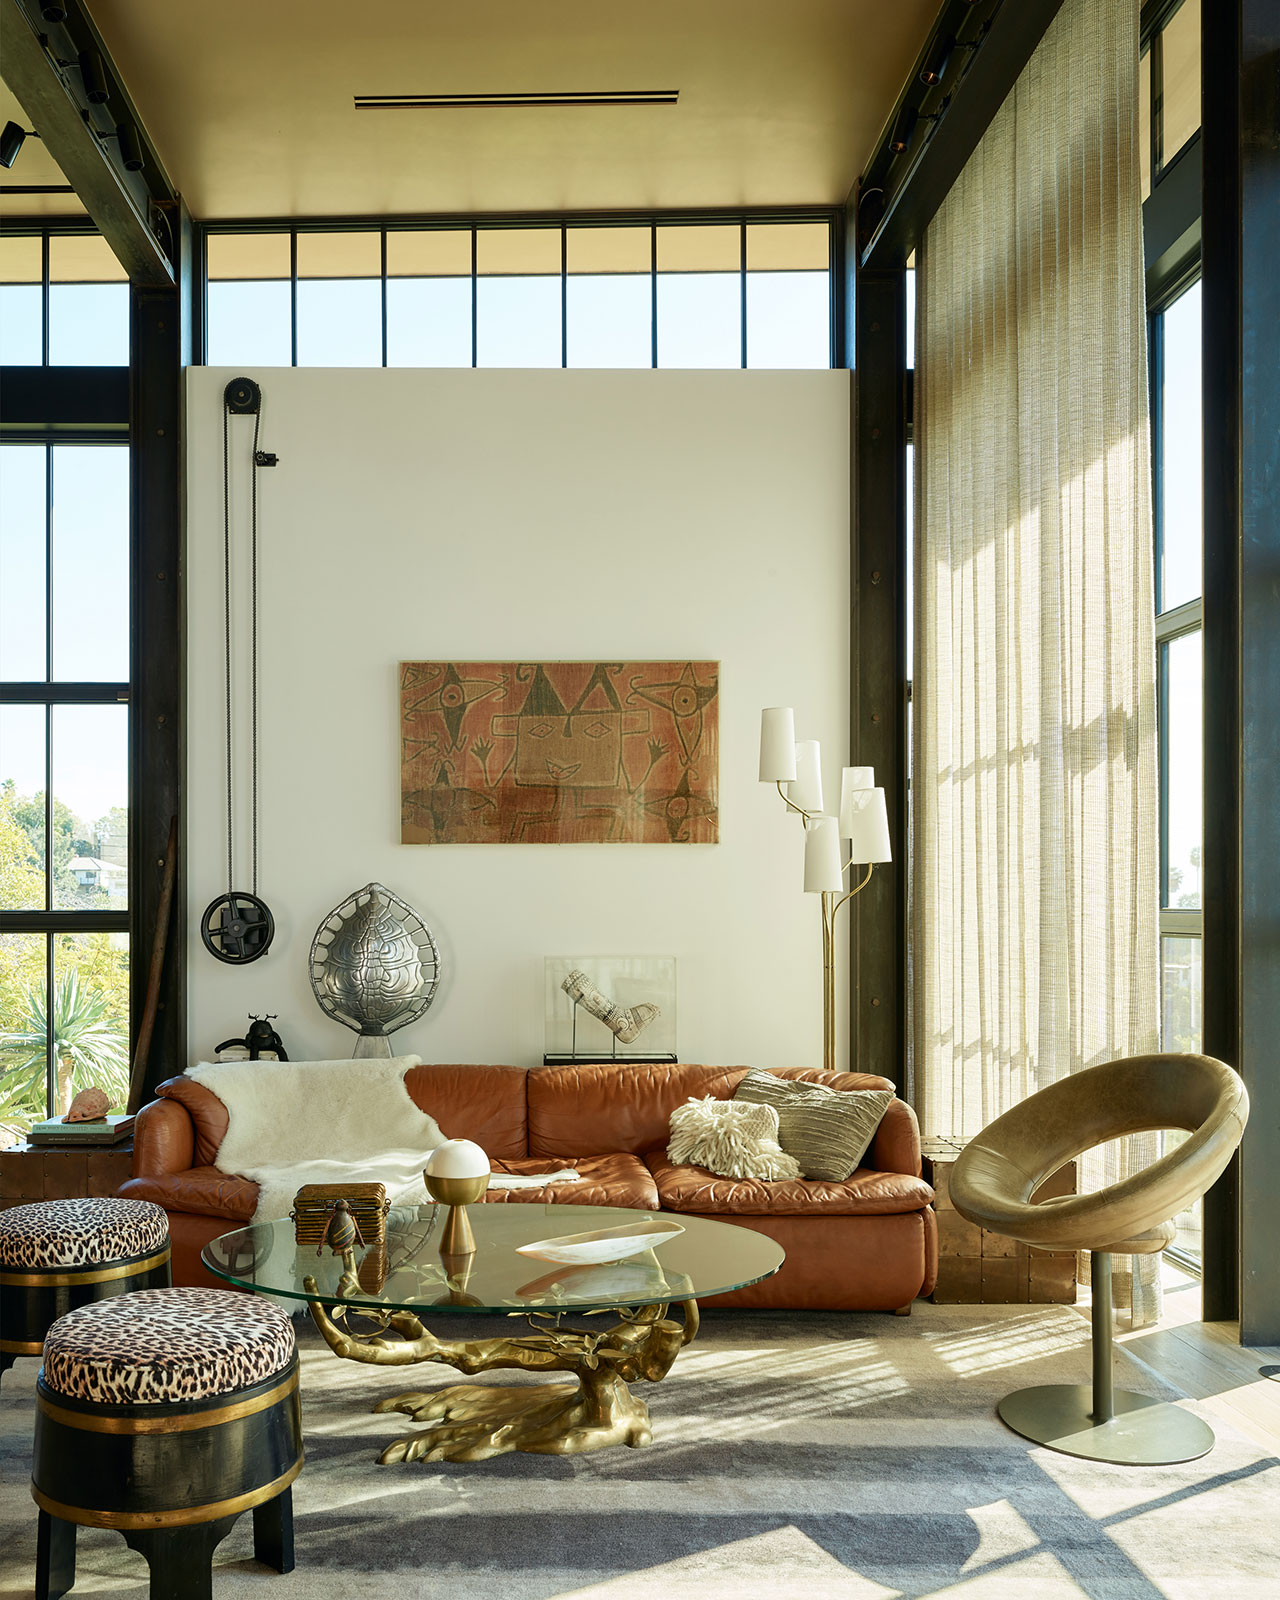 HollywoodHillsHouse by Mutuus Studio in Los Angeles, California.Photography by Kevin Scott. Featured:Willy Daro bronze table withcustom glass top, sofa byAlberto Rosselli for Saporiti,Anel chair byRicardo Fasanello, Japanese Barrel stools circa 1930 reupholstered,polished aluminum Tortoise shell lamp by Arthur Court,Brian Henson's cast with Jim Hensons cartoons, Aboriginal tapestry (on the wall).